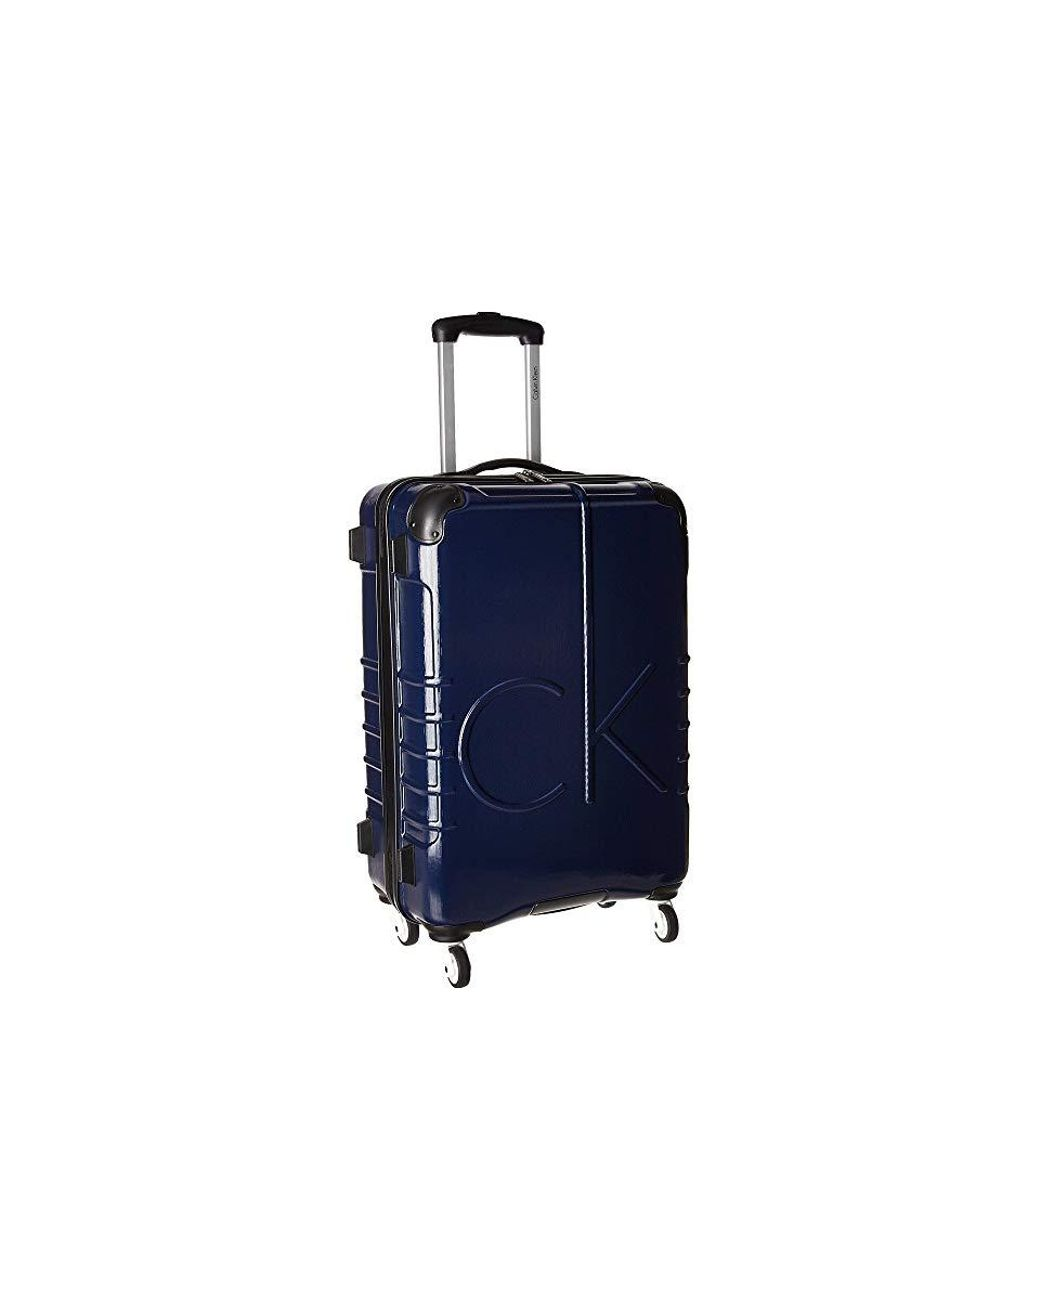 02f47b88db2 Calvin Klein Ck-526 Islander 24 Upright Suitcase (navy) Luggage in Blue -  Lyst